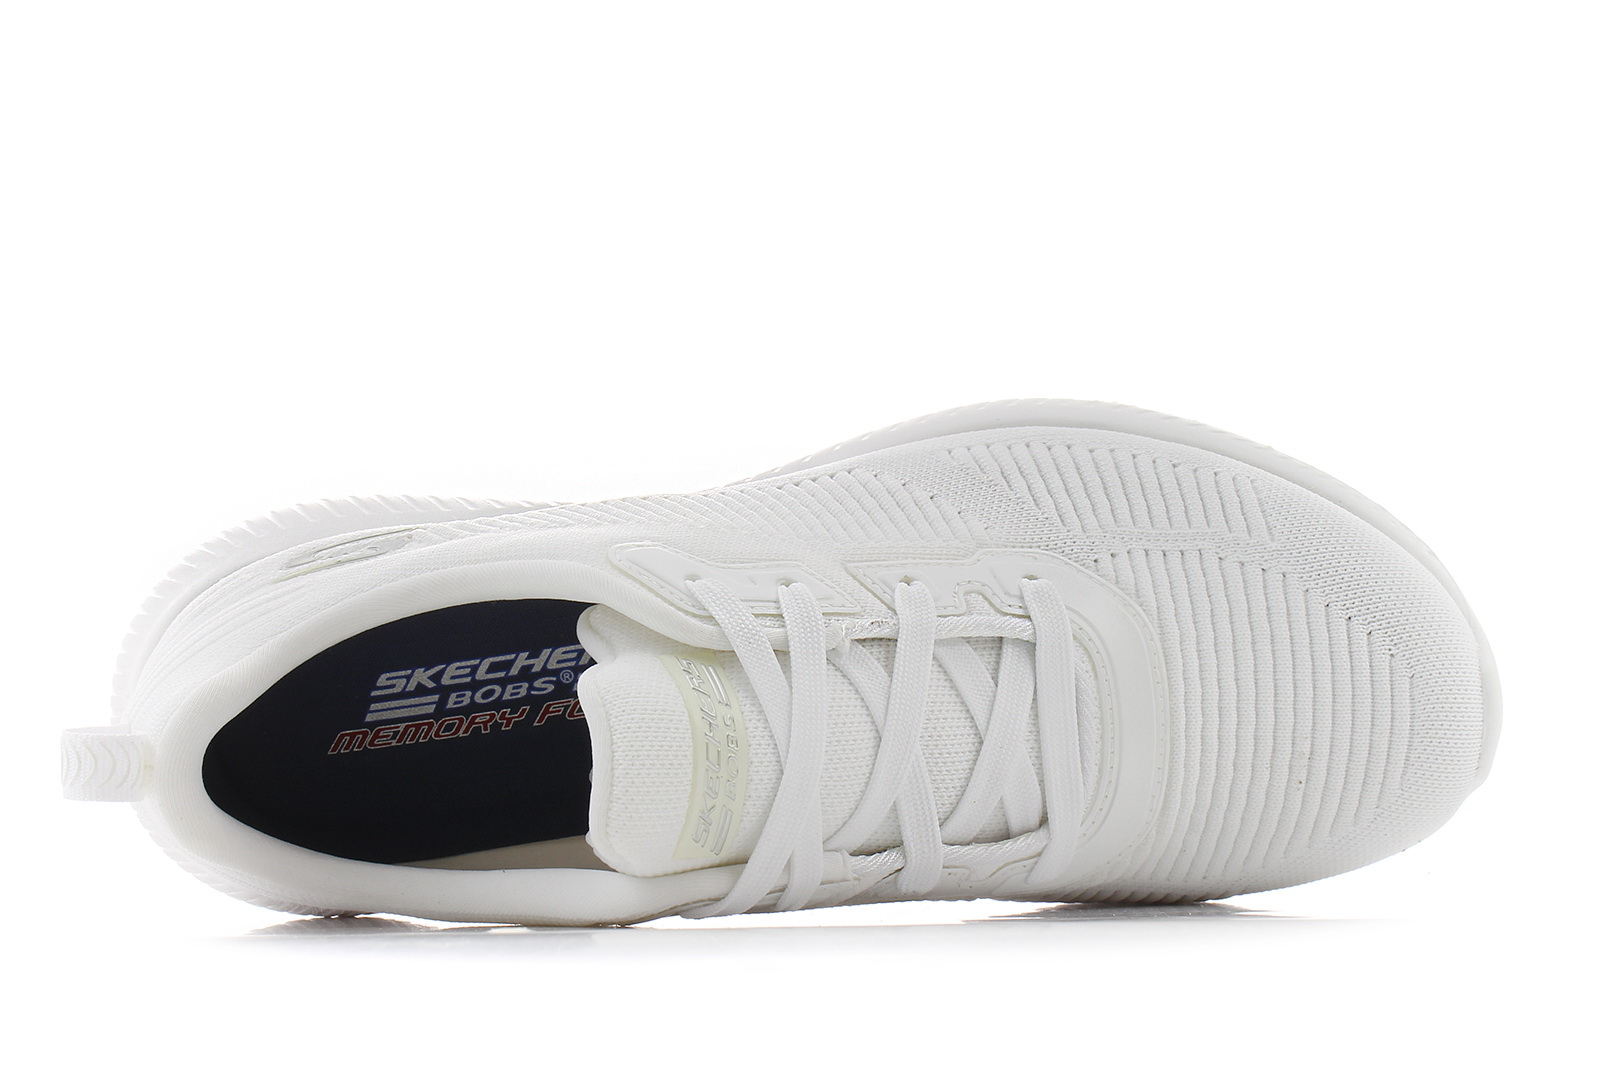 Skechers Cipő - Bobs Squad - Tough Talk - 32504-wht - Office Shoes ... d818fabe6f